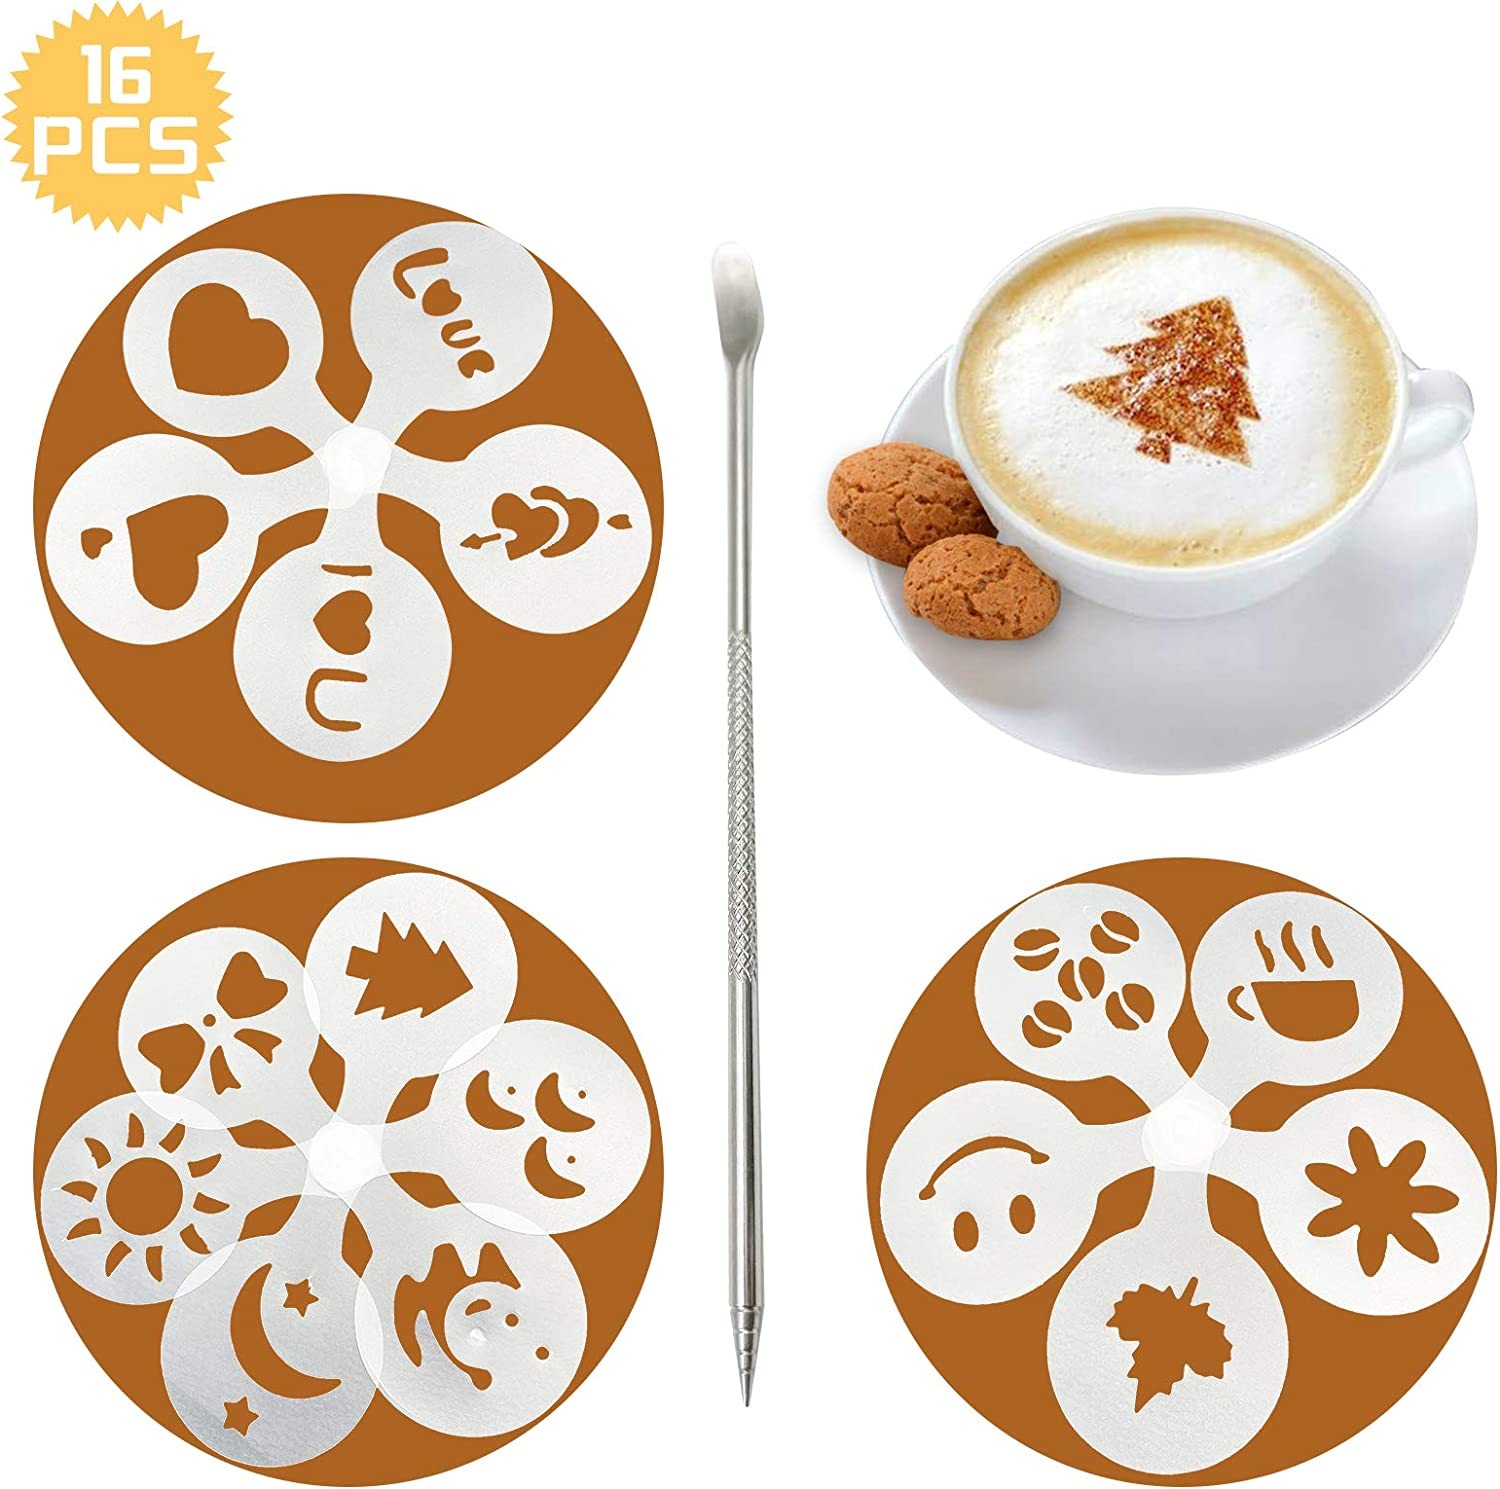 16 templates moulds for decorating cappuccino coffee